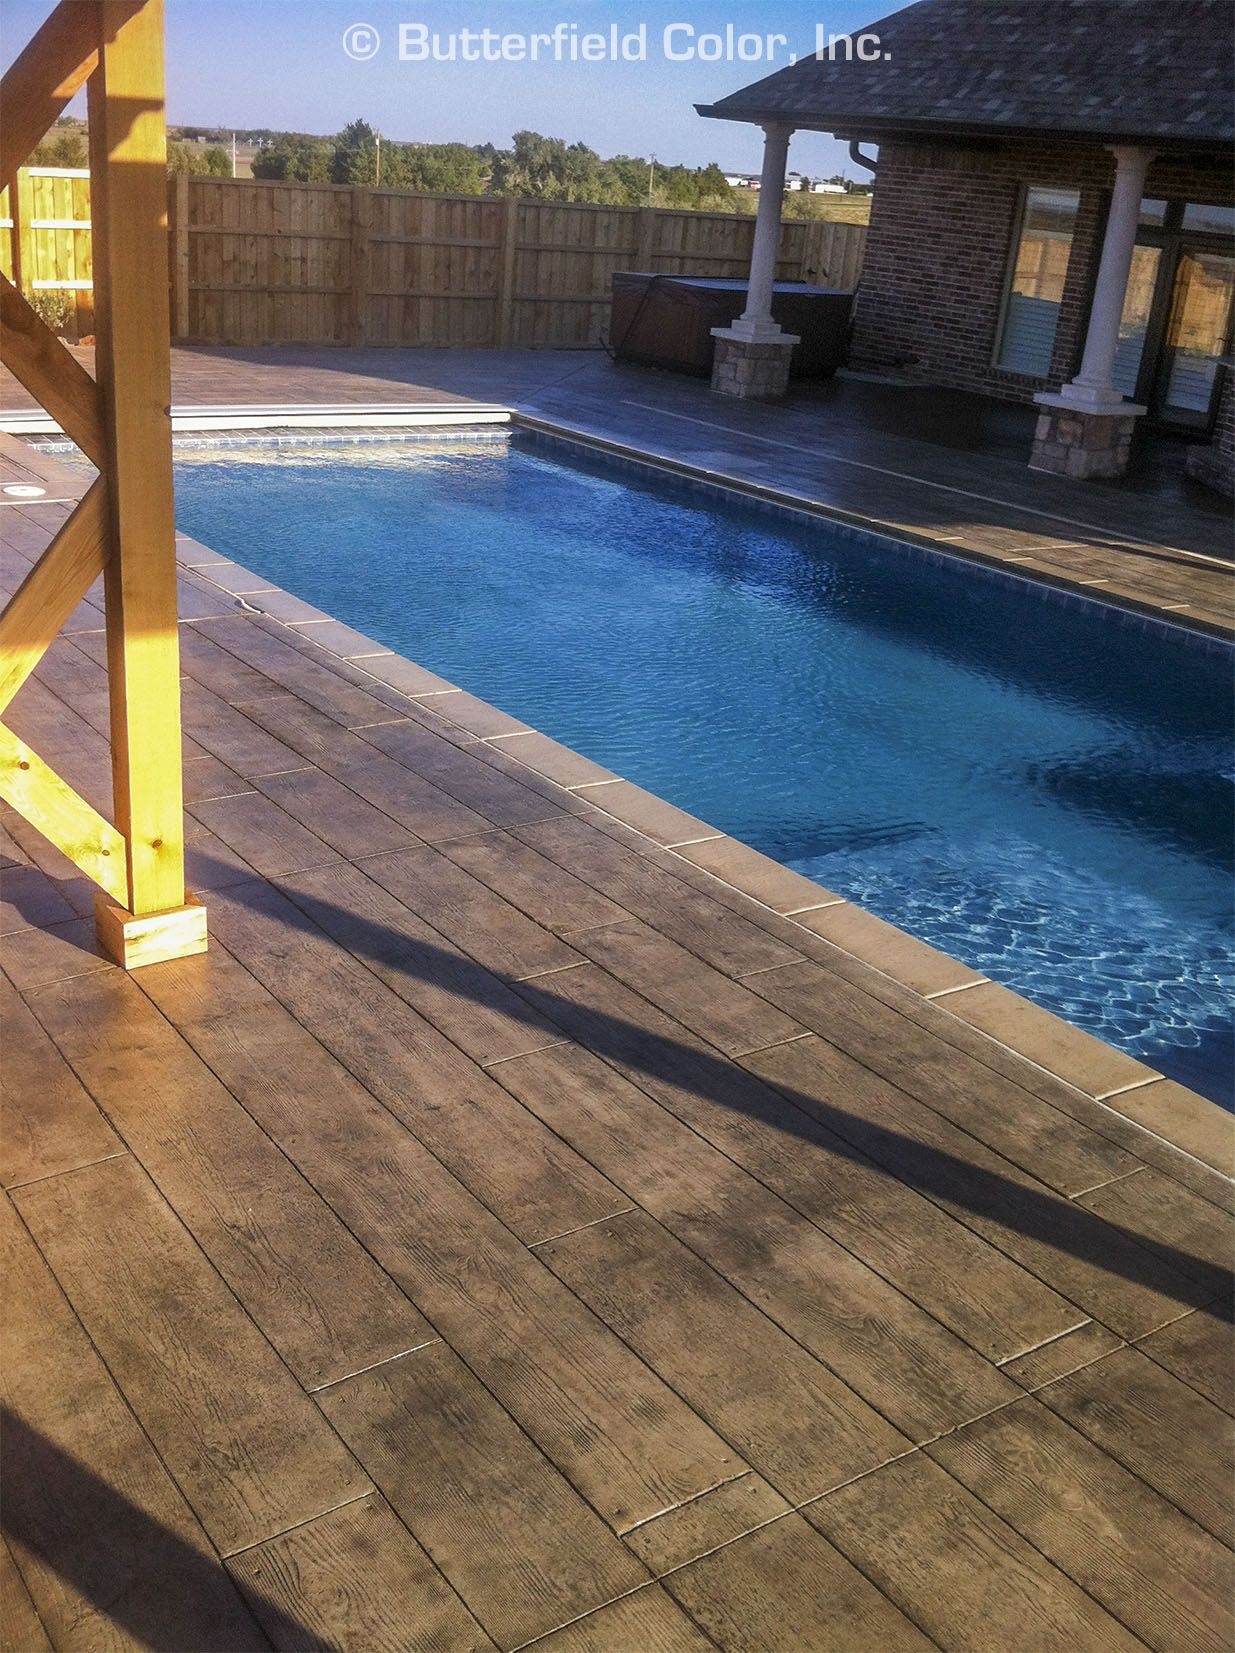 Pool Deck Wood Design Stamped Concrete Overlay Swimming Pool Decks Pool Patio Concrete Pool